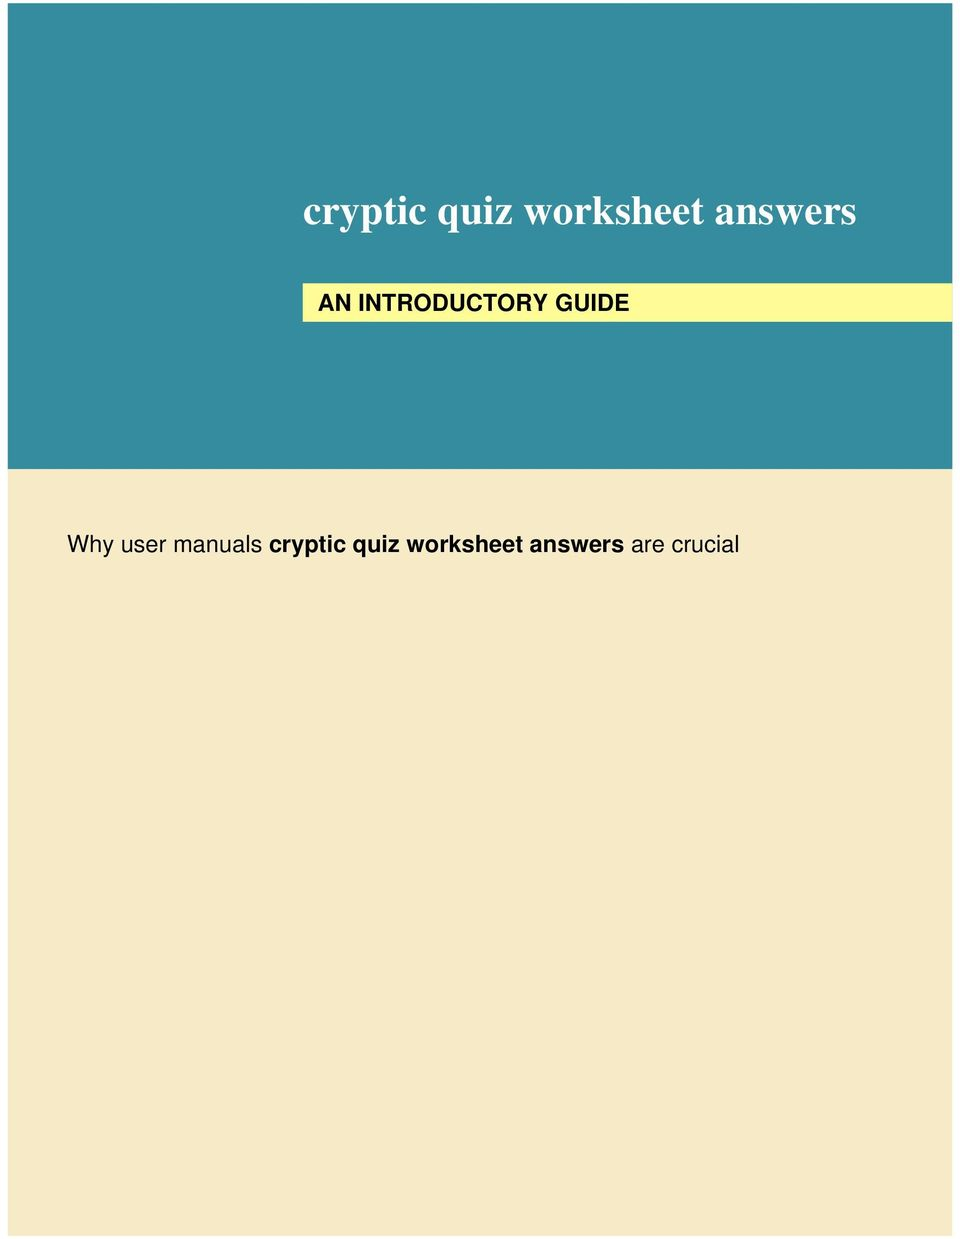 cryptic quiz worksheet answers - PDF